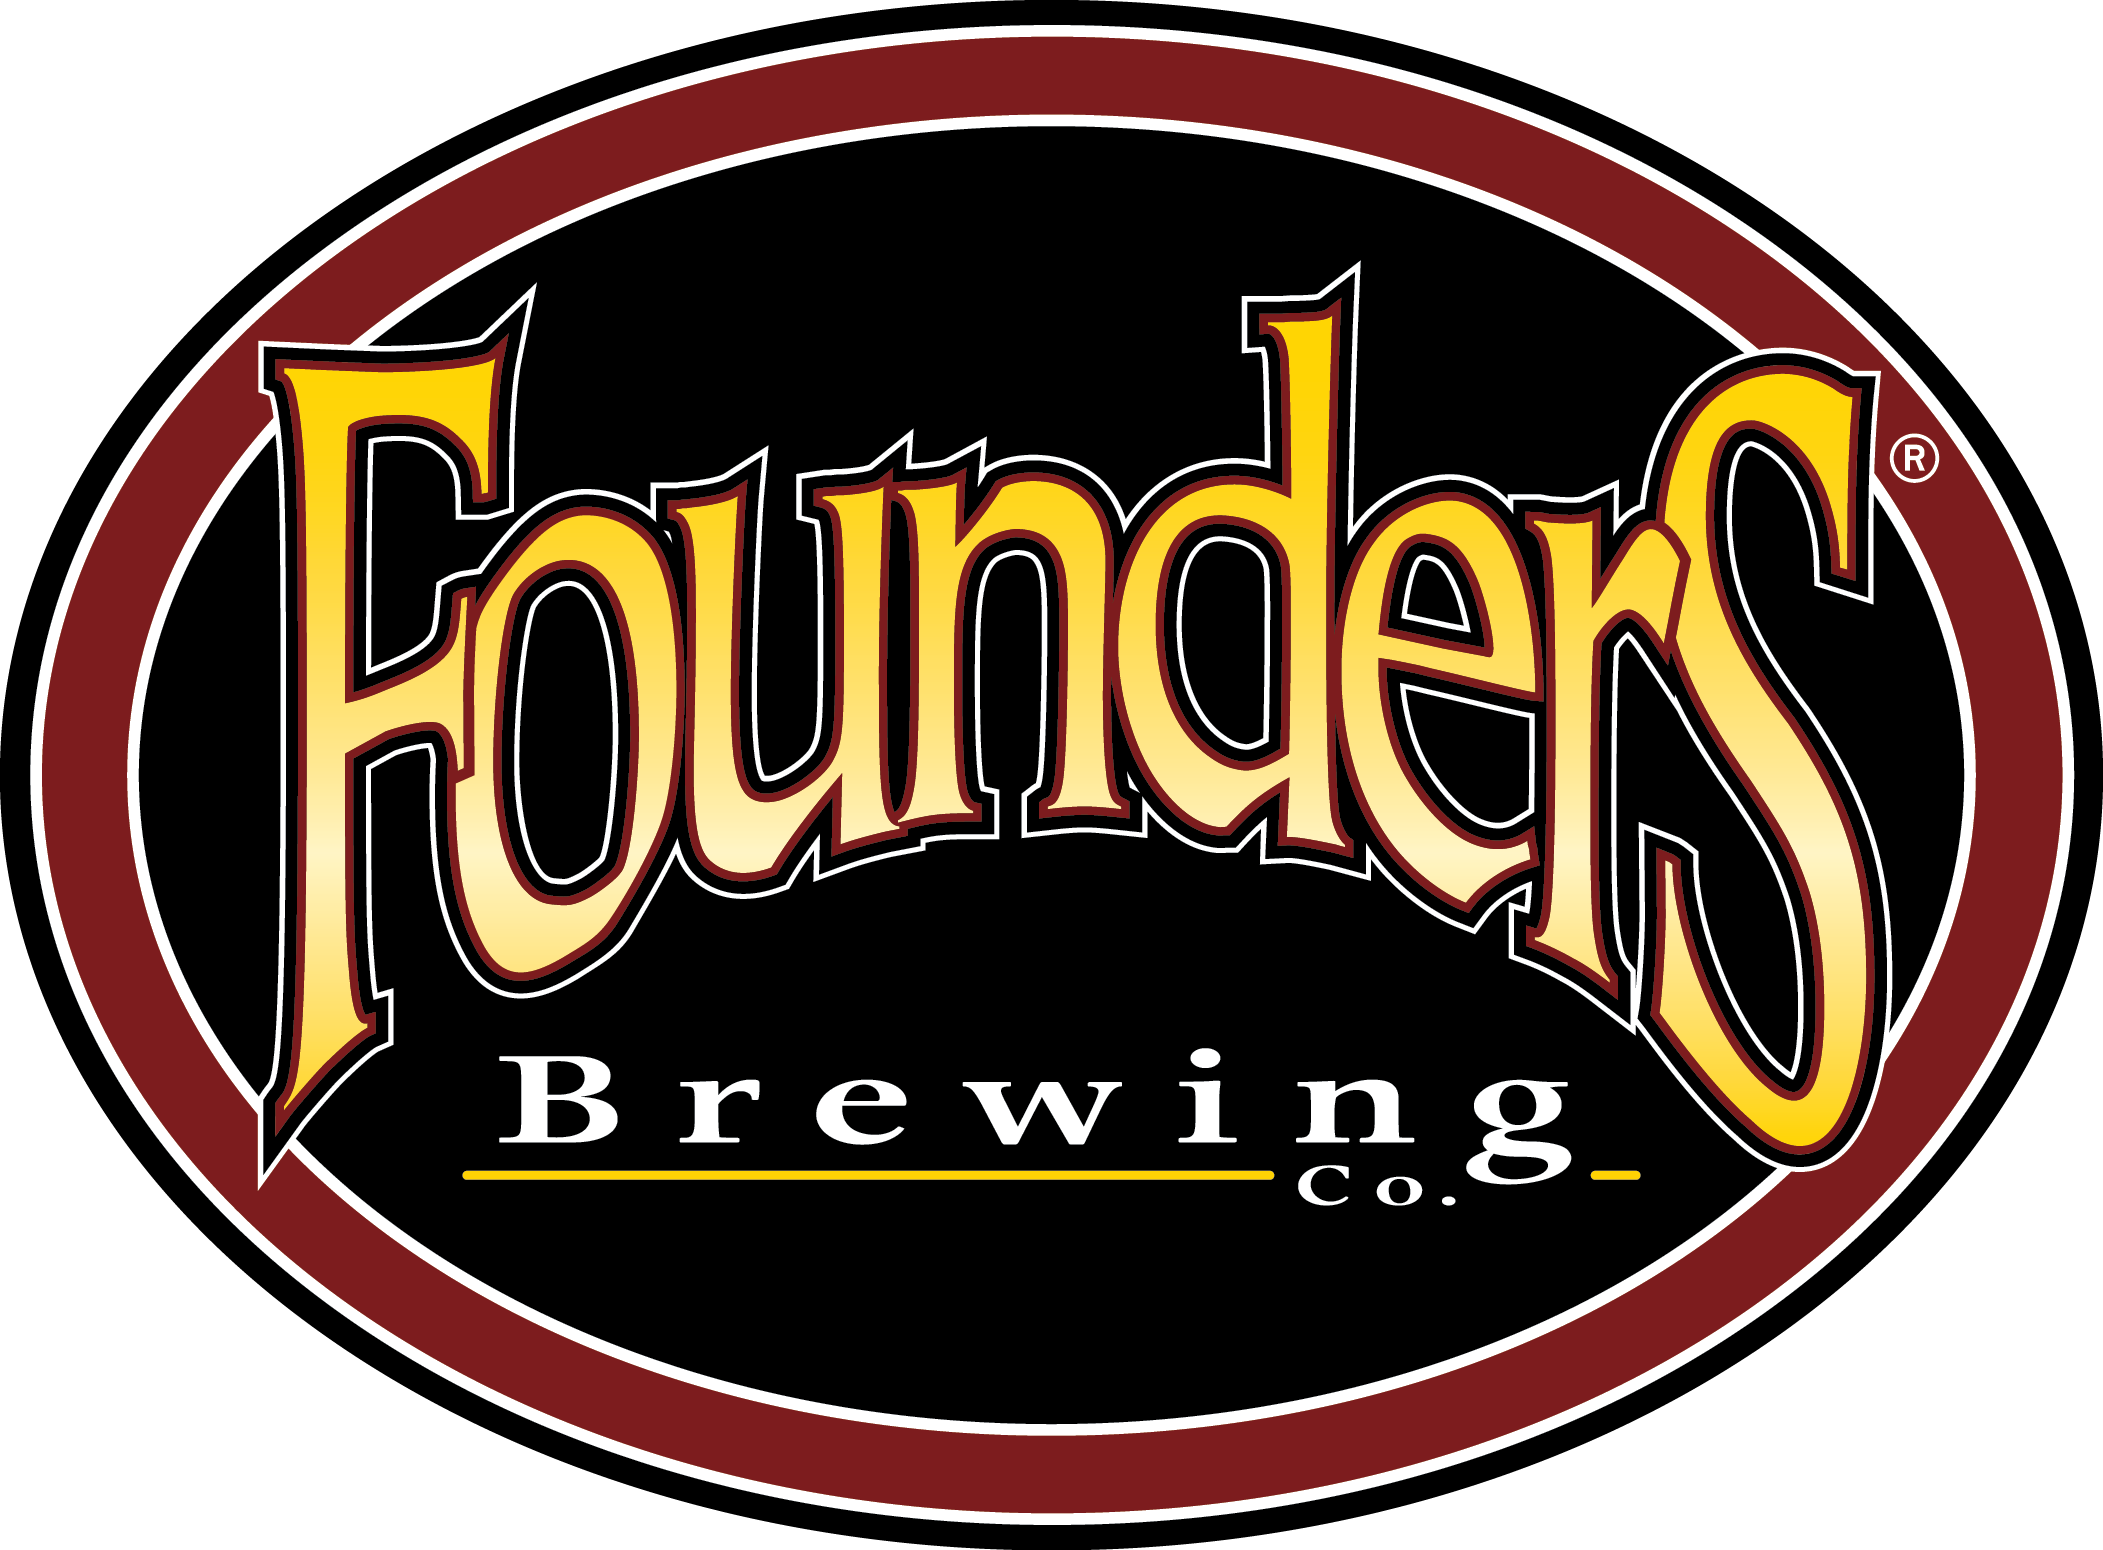 Founder's 15 Packs